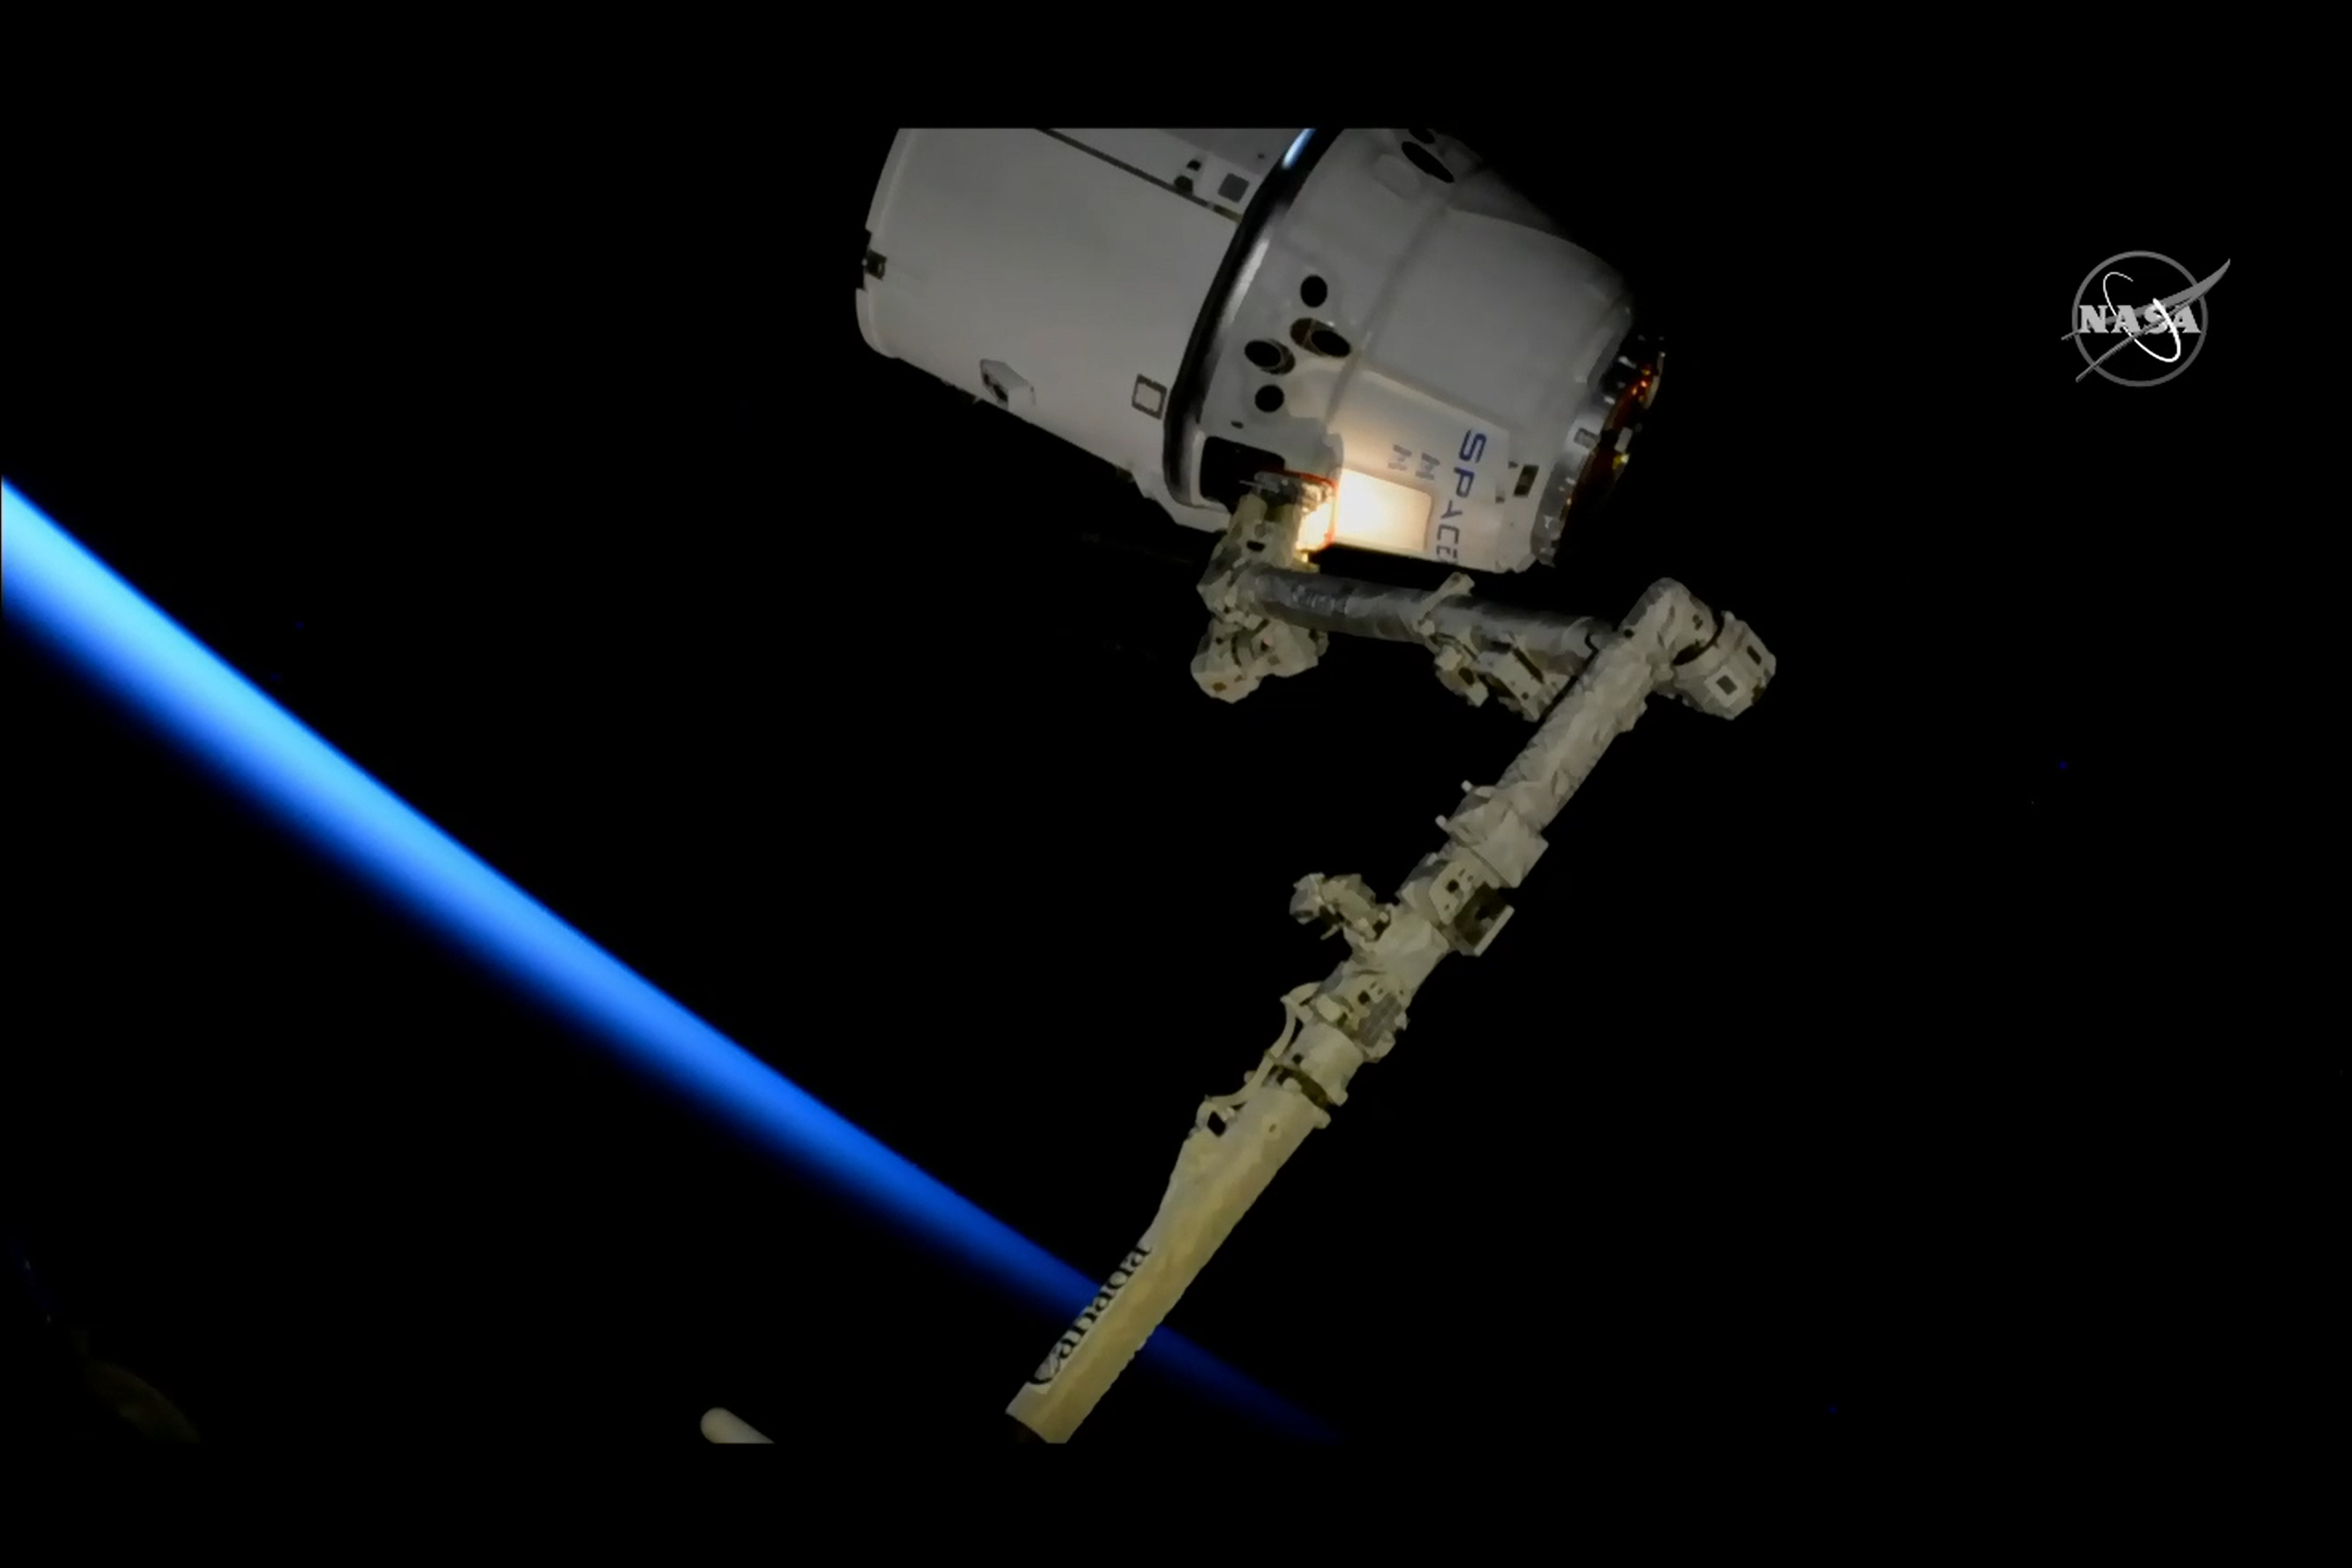 Astronauts Capture SpaceX Dragon Cargo Ship for Final Time with Robot Arm after ISS Arrival